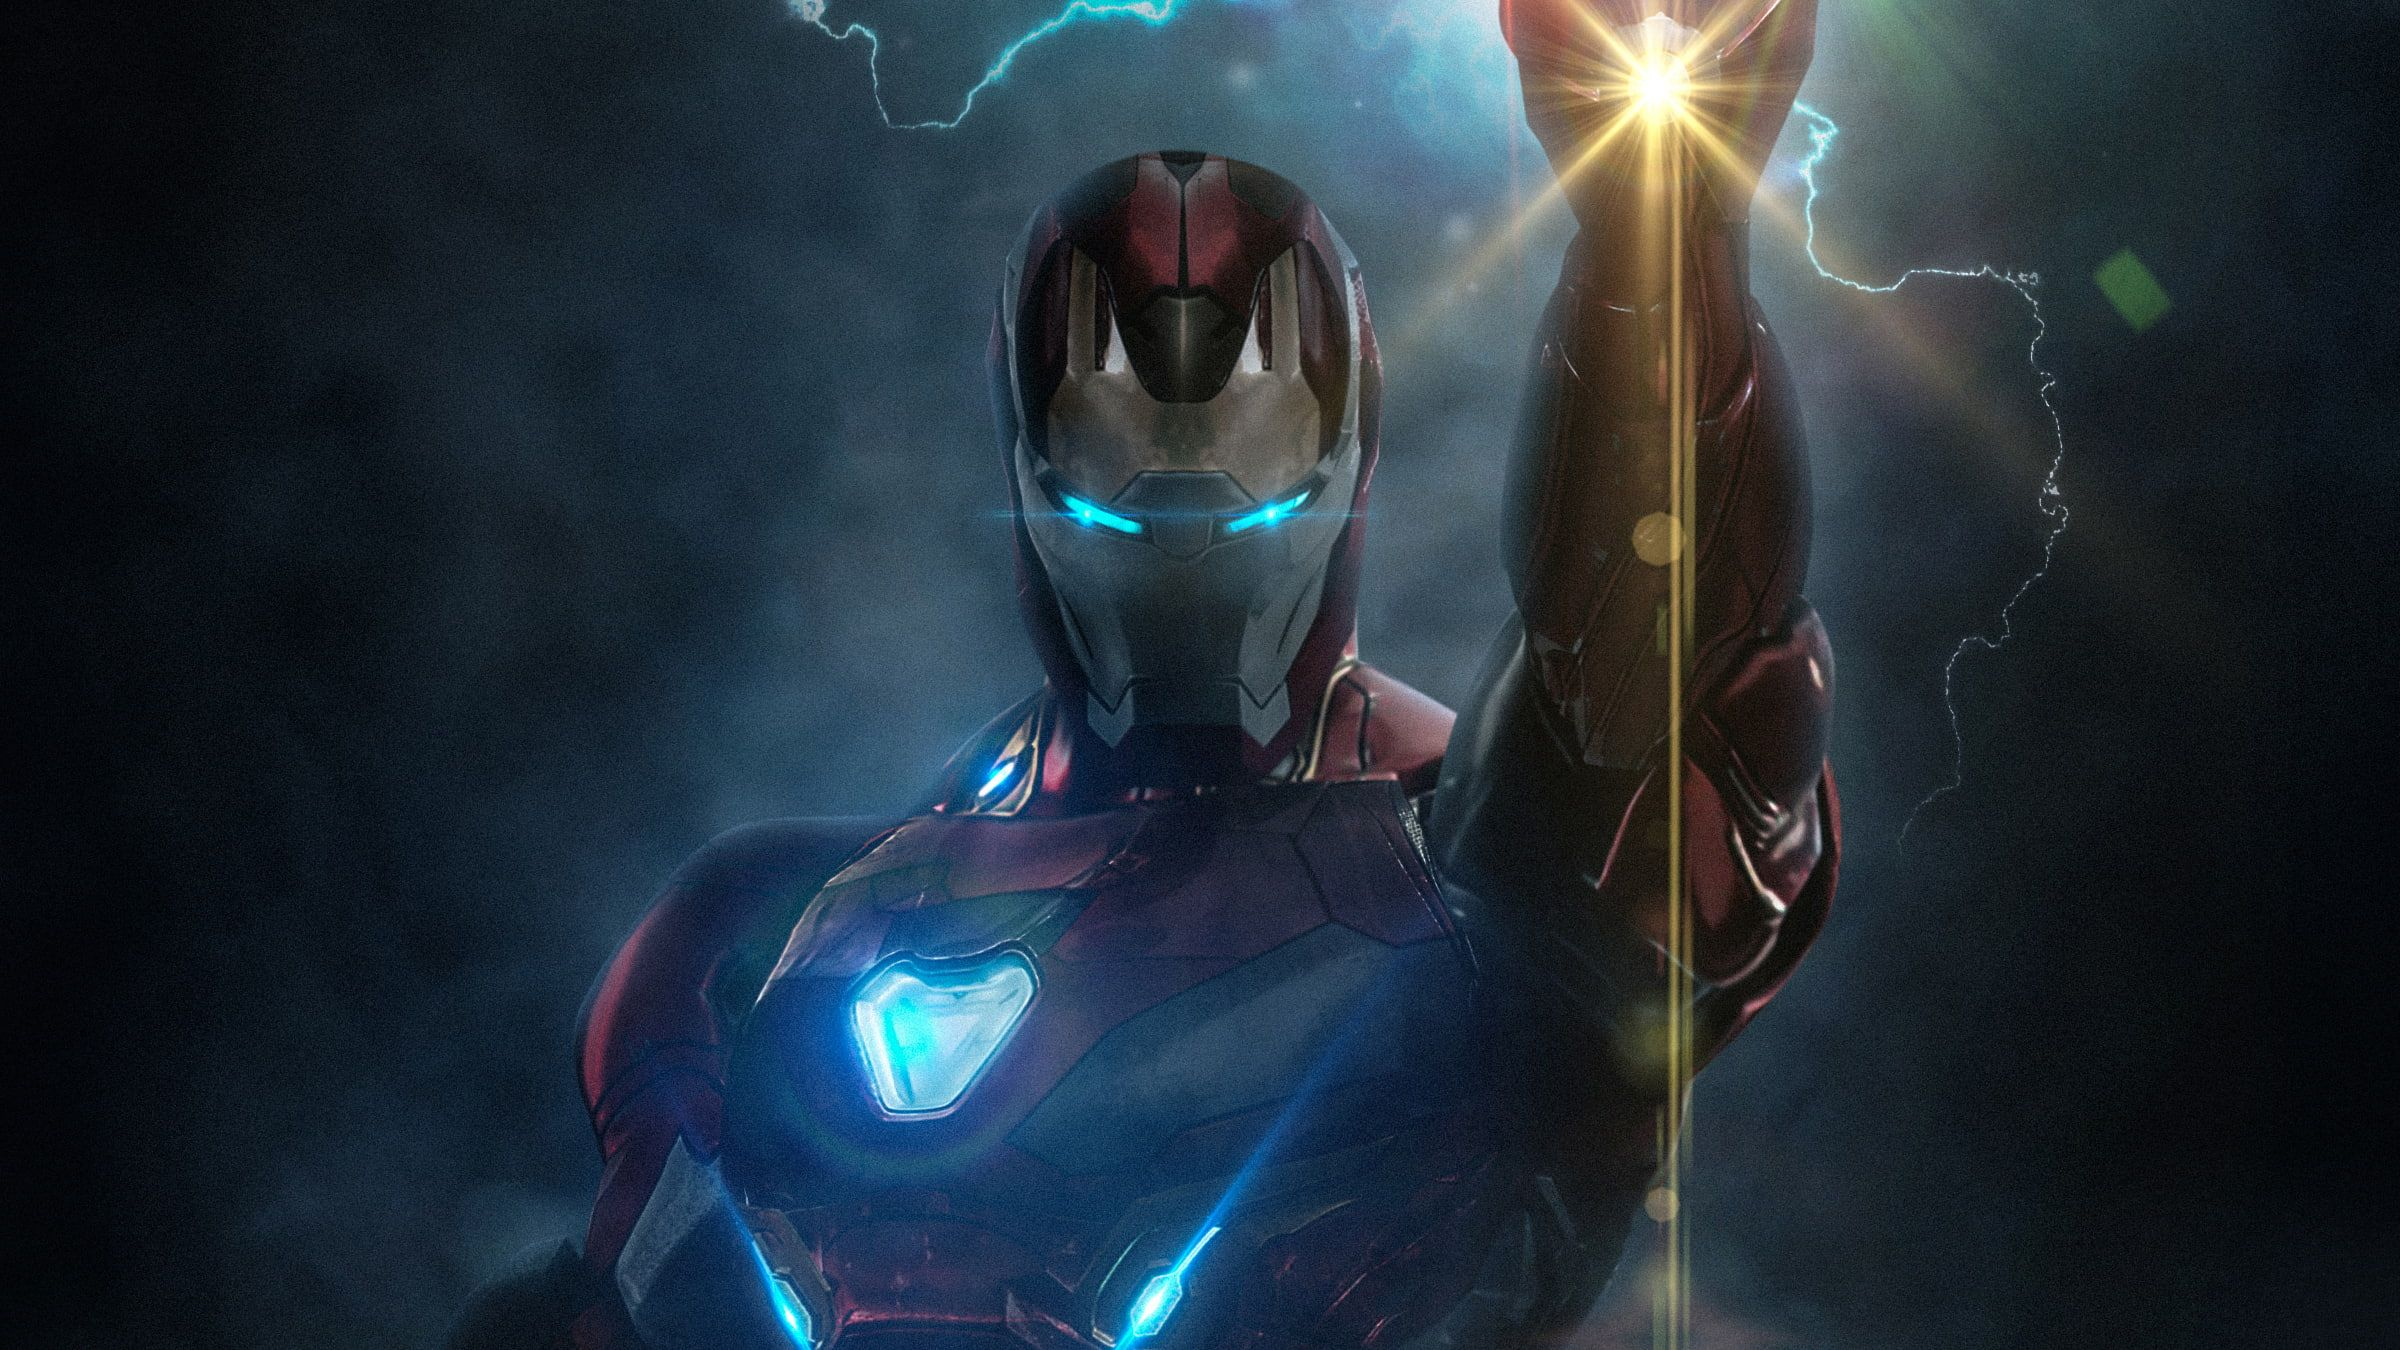 The Avengers Avengers Endgame Iron Man 1080p Wallpaper Hdwallpaper Desktop Iron Man Hd Wallpaper Avengers Wallpaper Iron Man Wallpaper